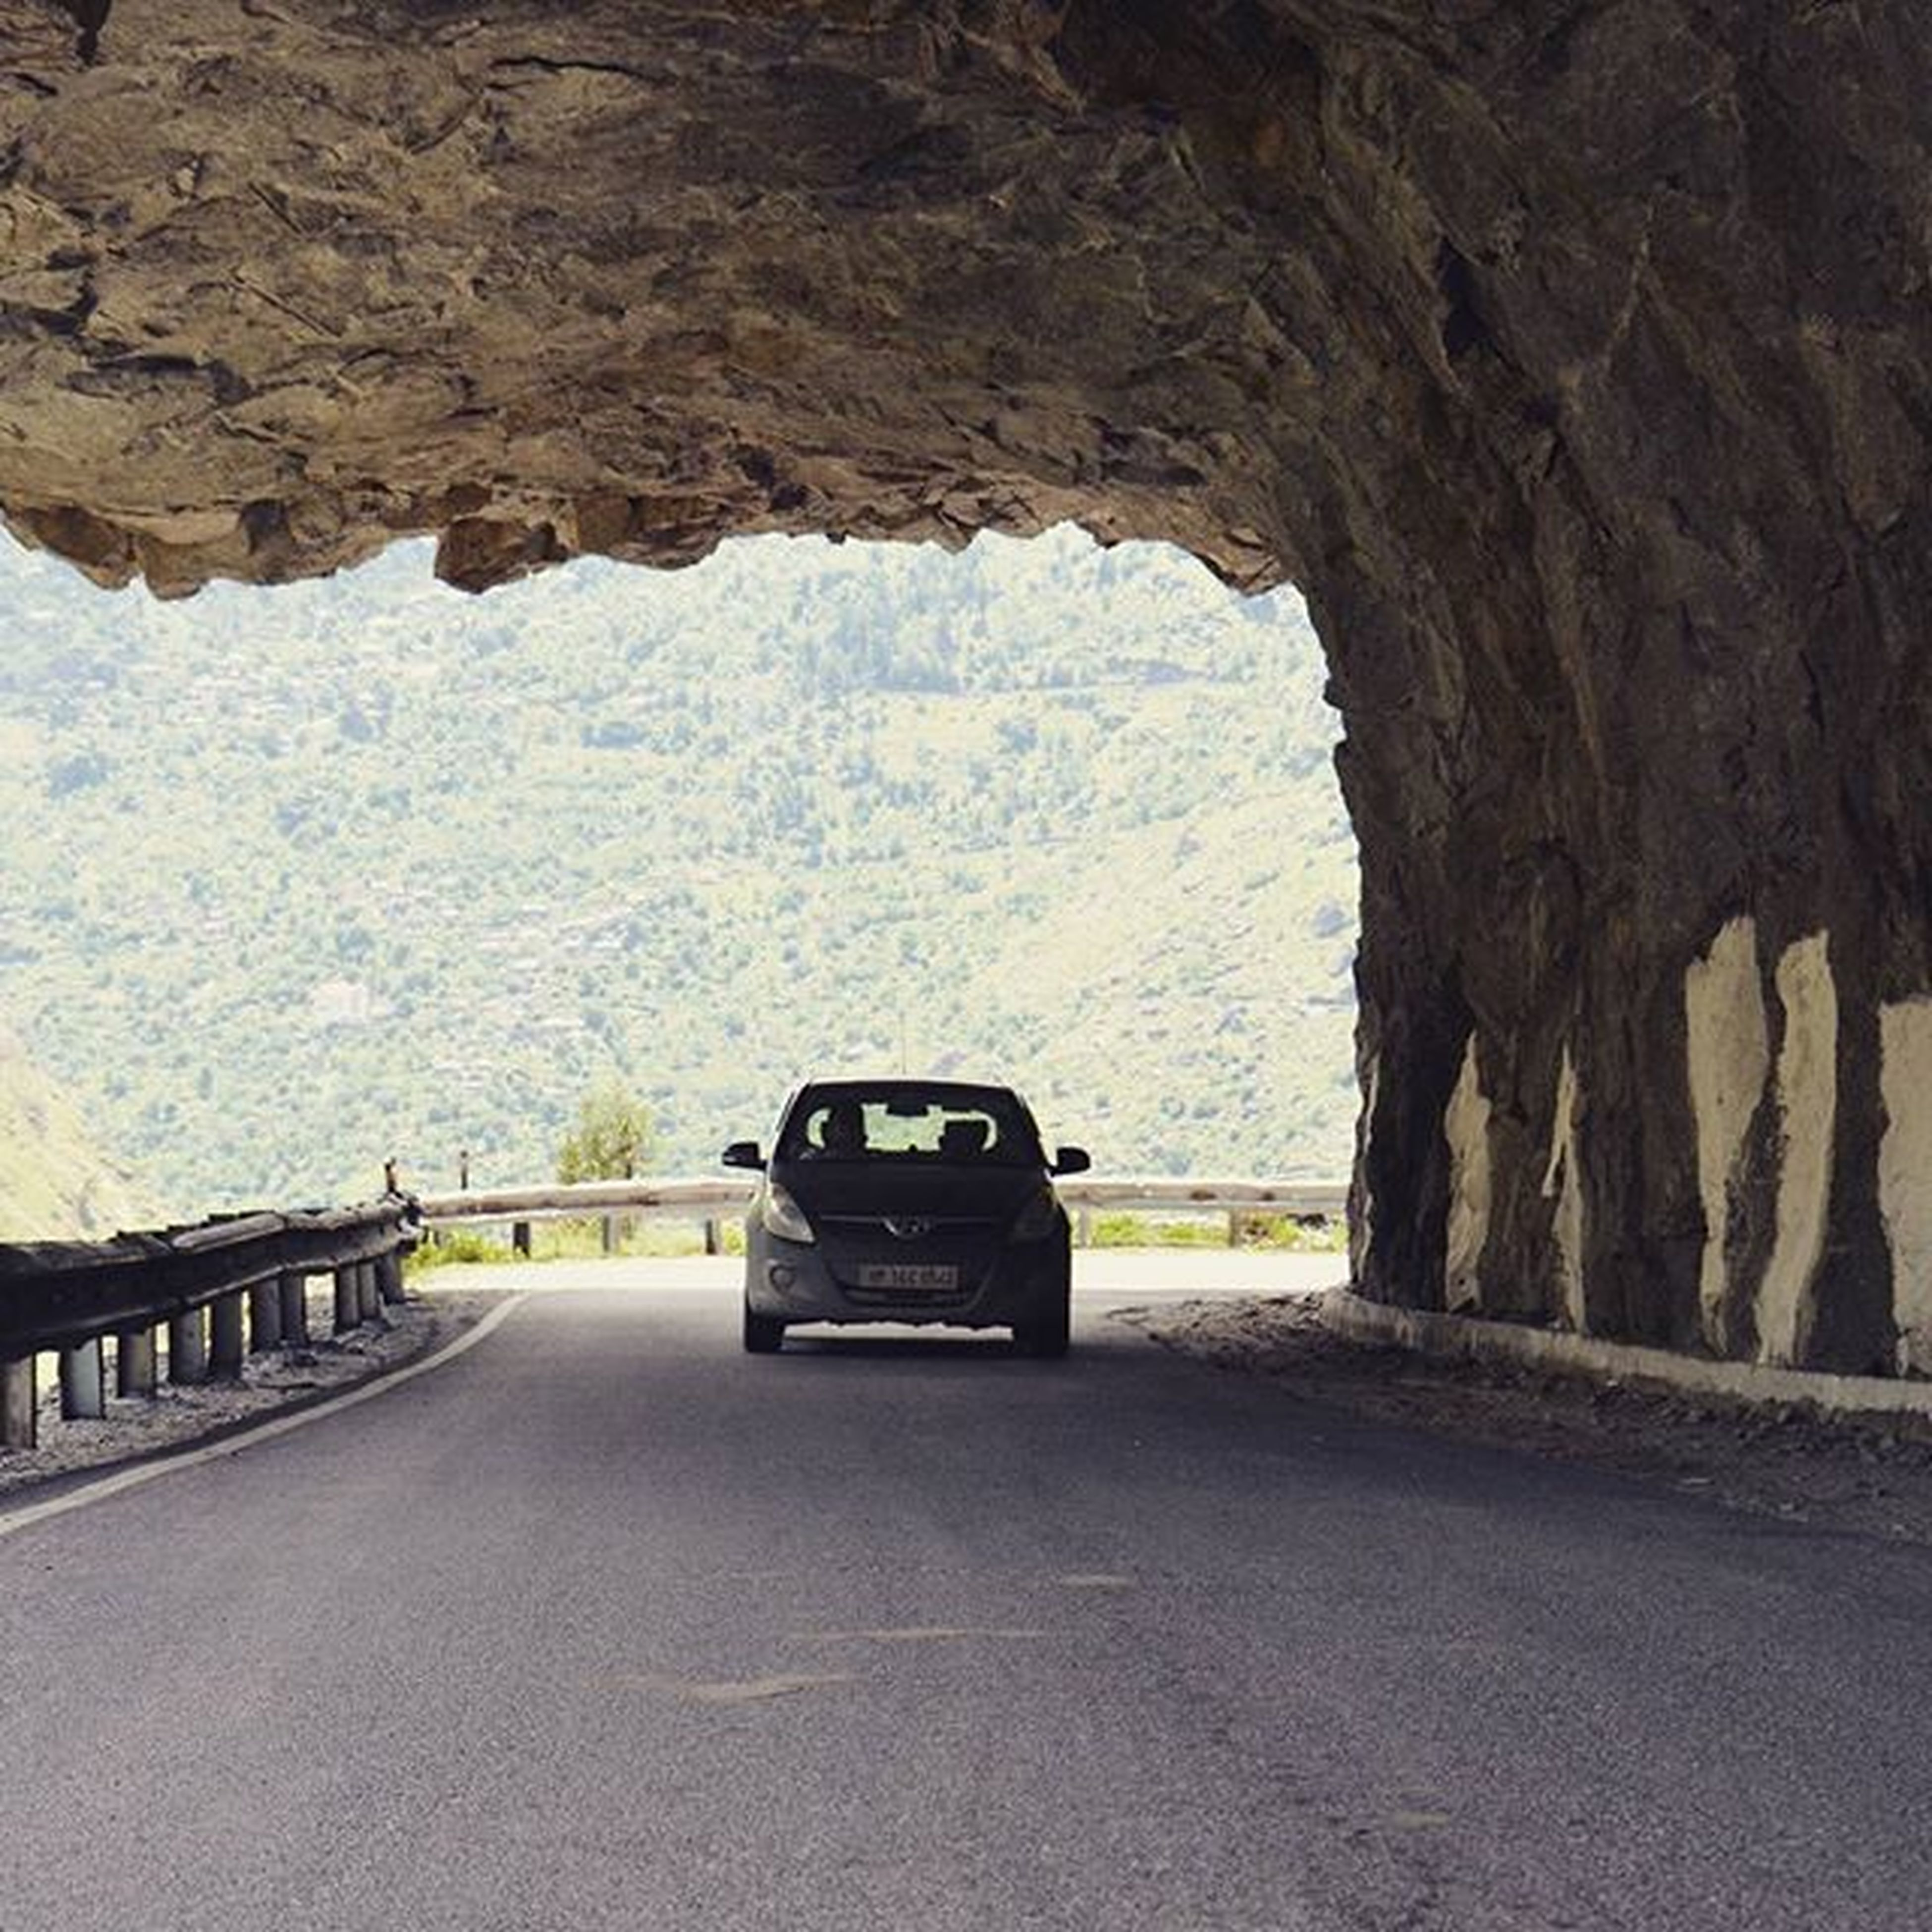 transportation, road, the way forward, car, mountain, tree, street, day, land vehicle, rock formation, empty, nature, diminishing perspective, arch, rock - object, tranquility, travel, no people, tranquil scene, indoors